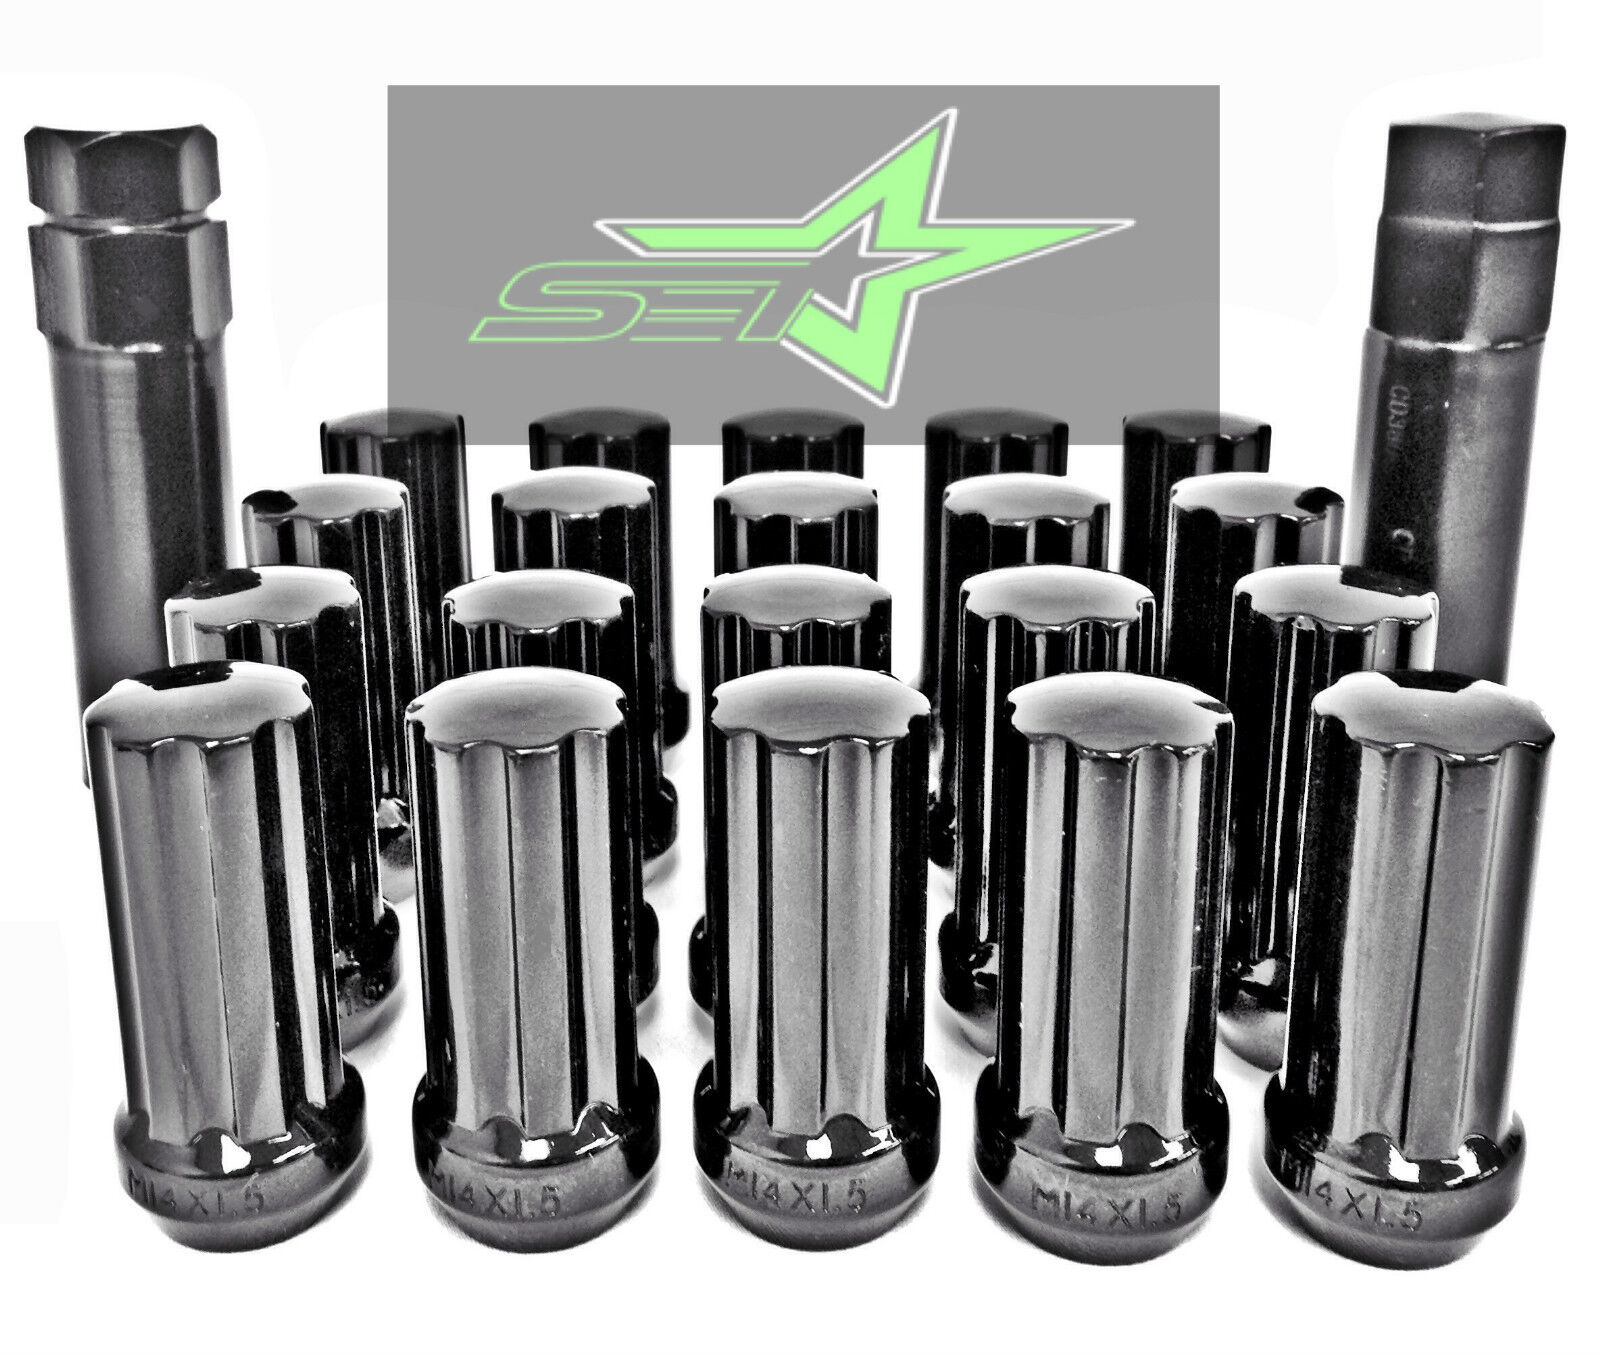 24 BLACK SPLINE LUG NUTS